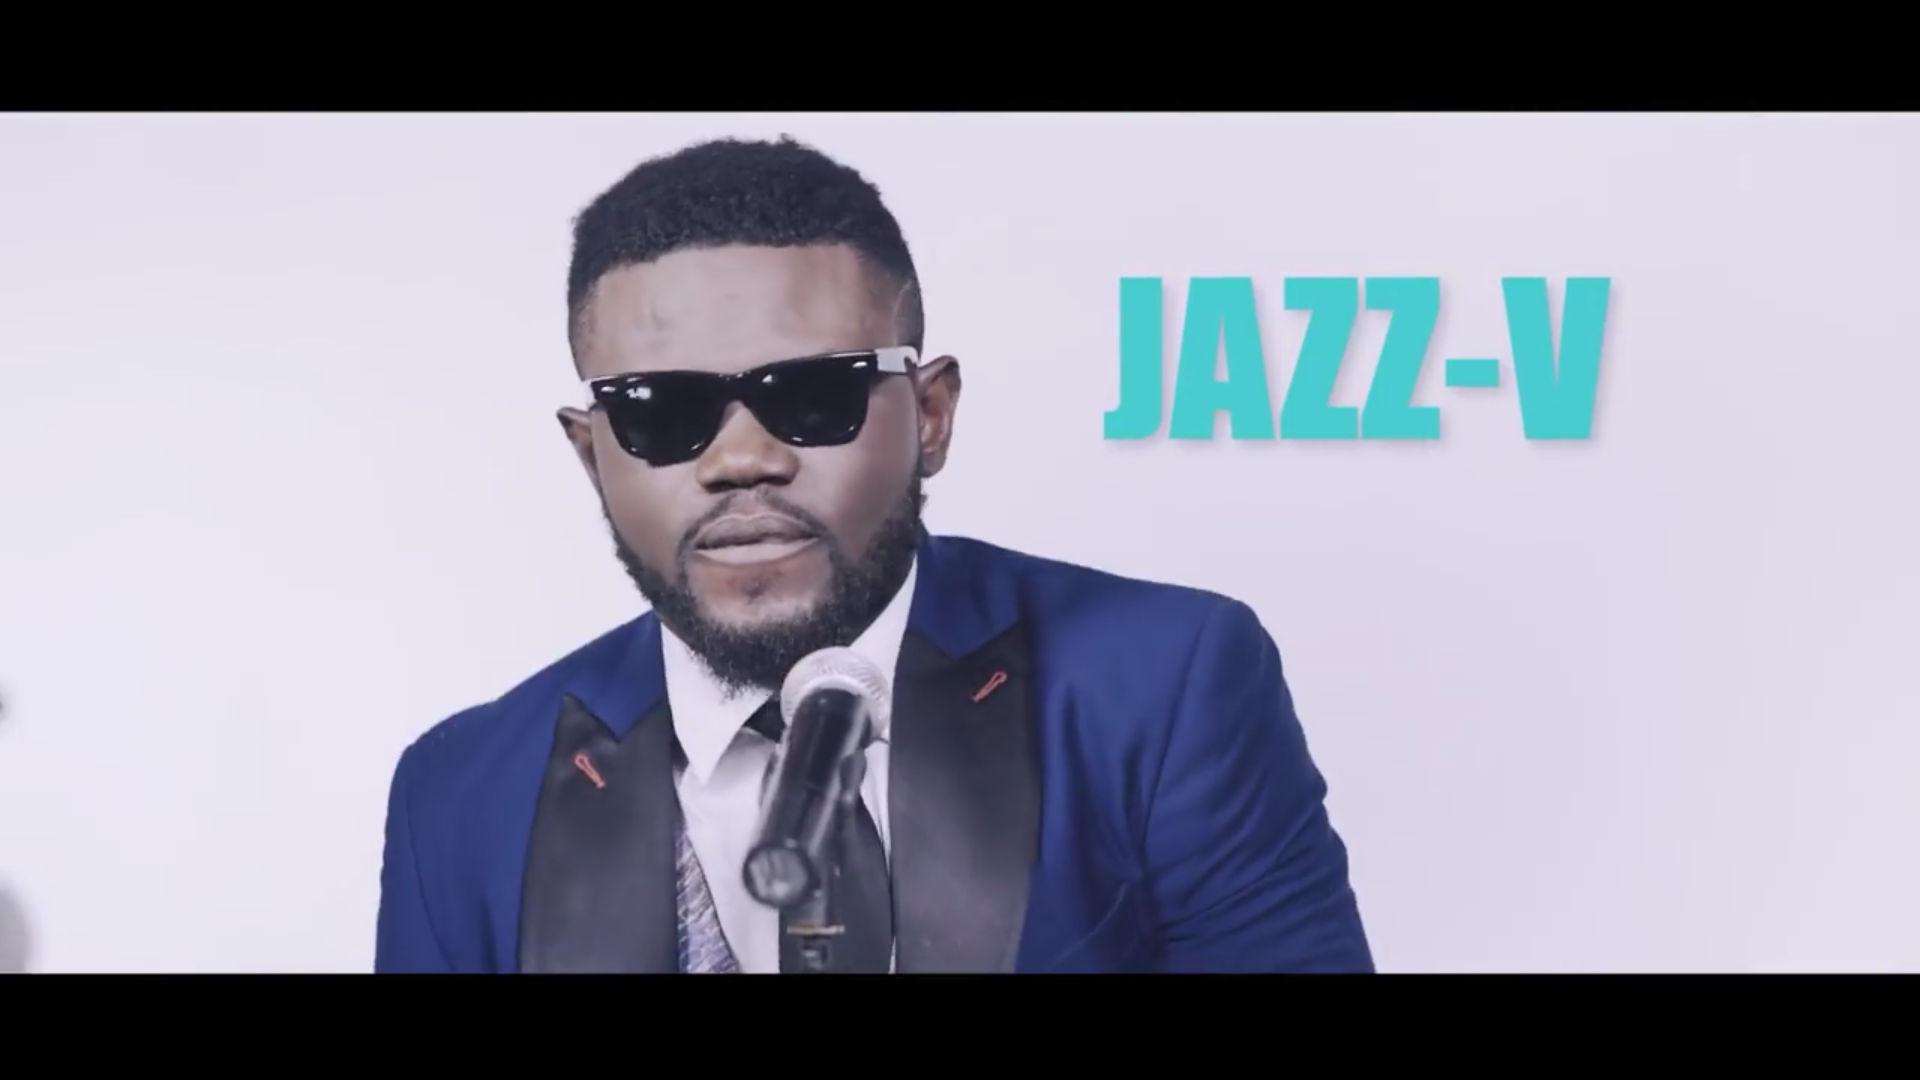 VIDEO: JAZZ - V – Dansa